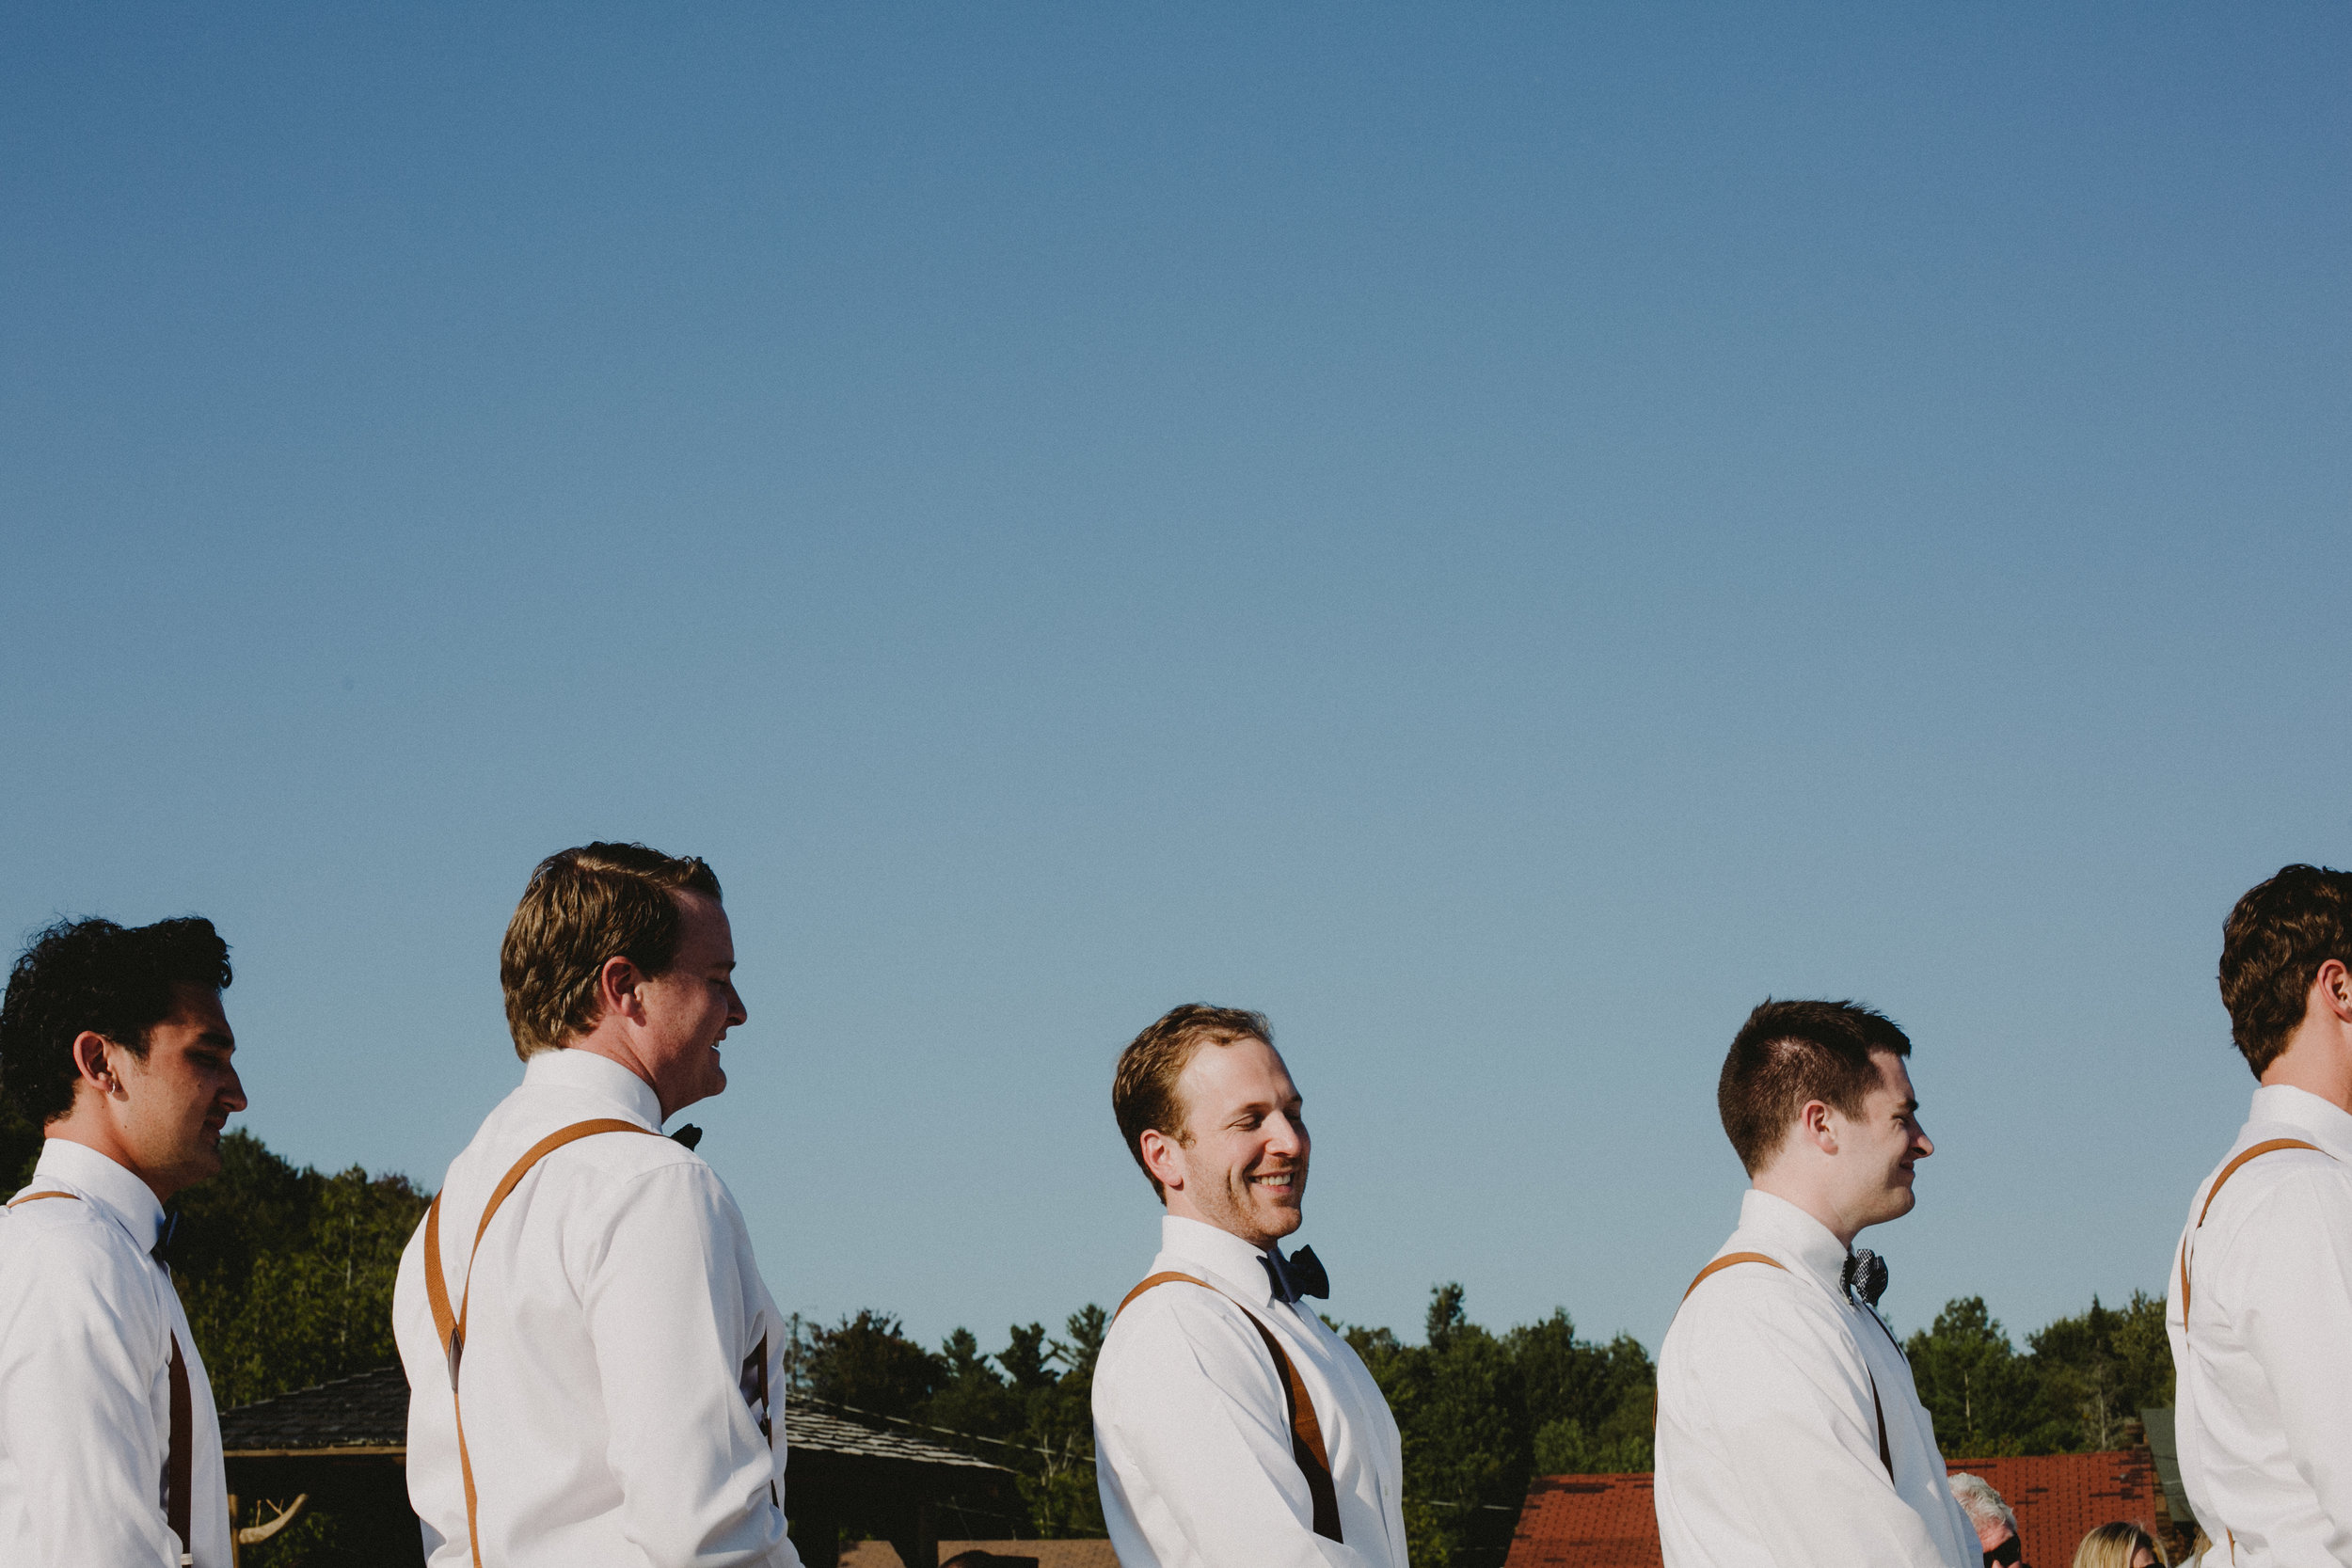 AmpersandBayResortWeddingChellise_Michael_Photography_Chellise_Michael-317.jpg